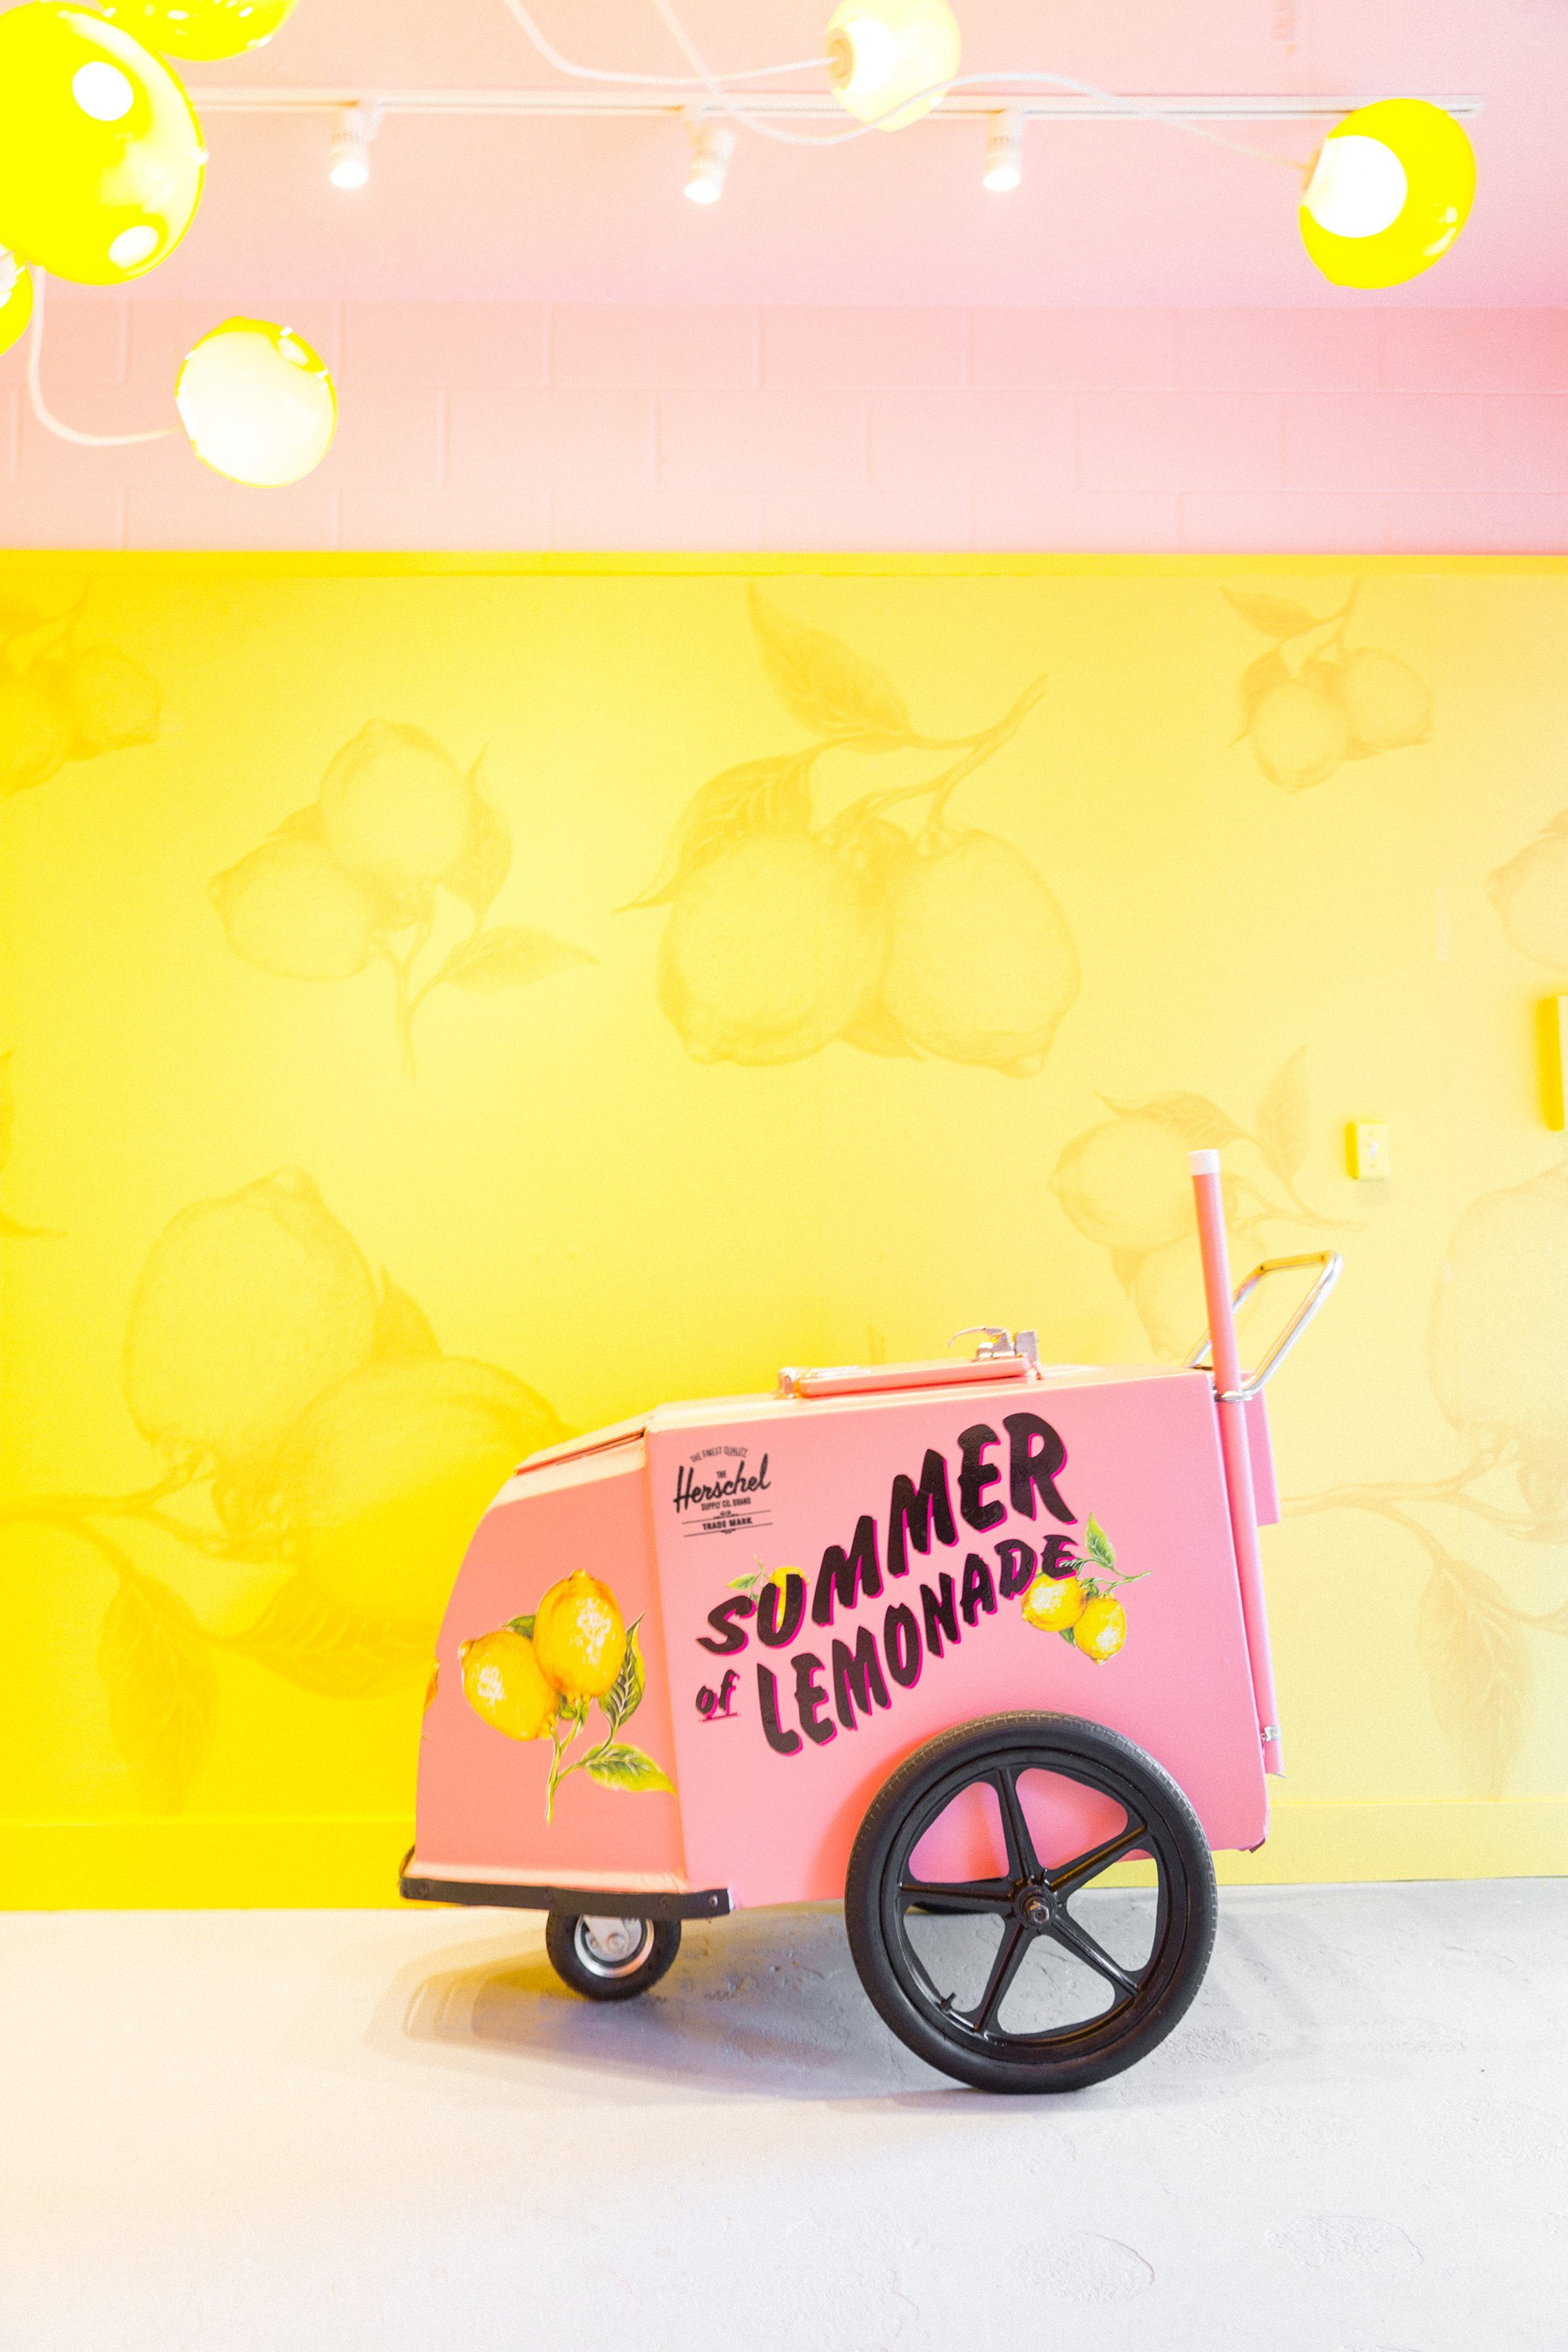 The theme hints on leisurely summer days & childhood lemonade stands. (Herschel Co.)